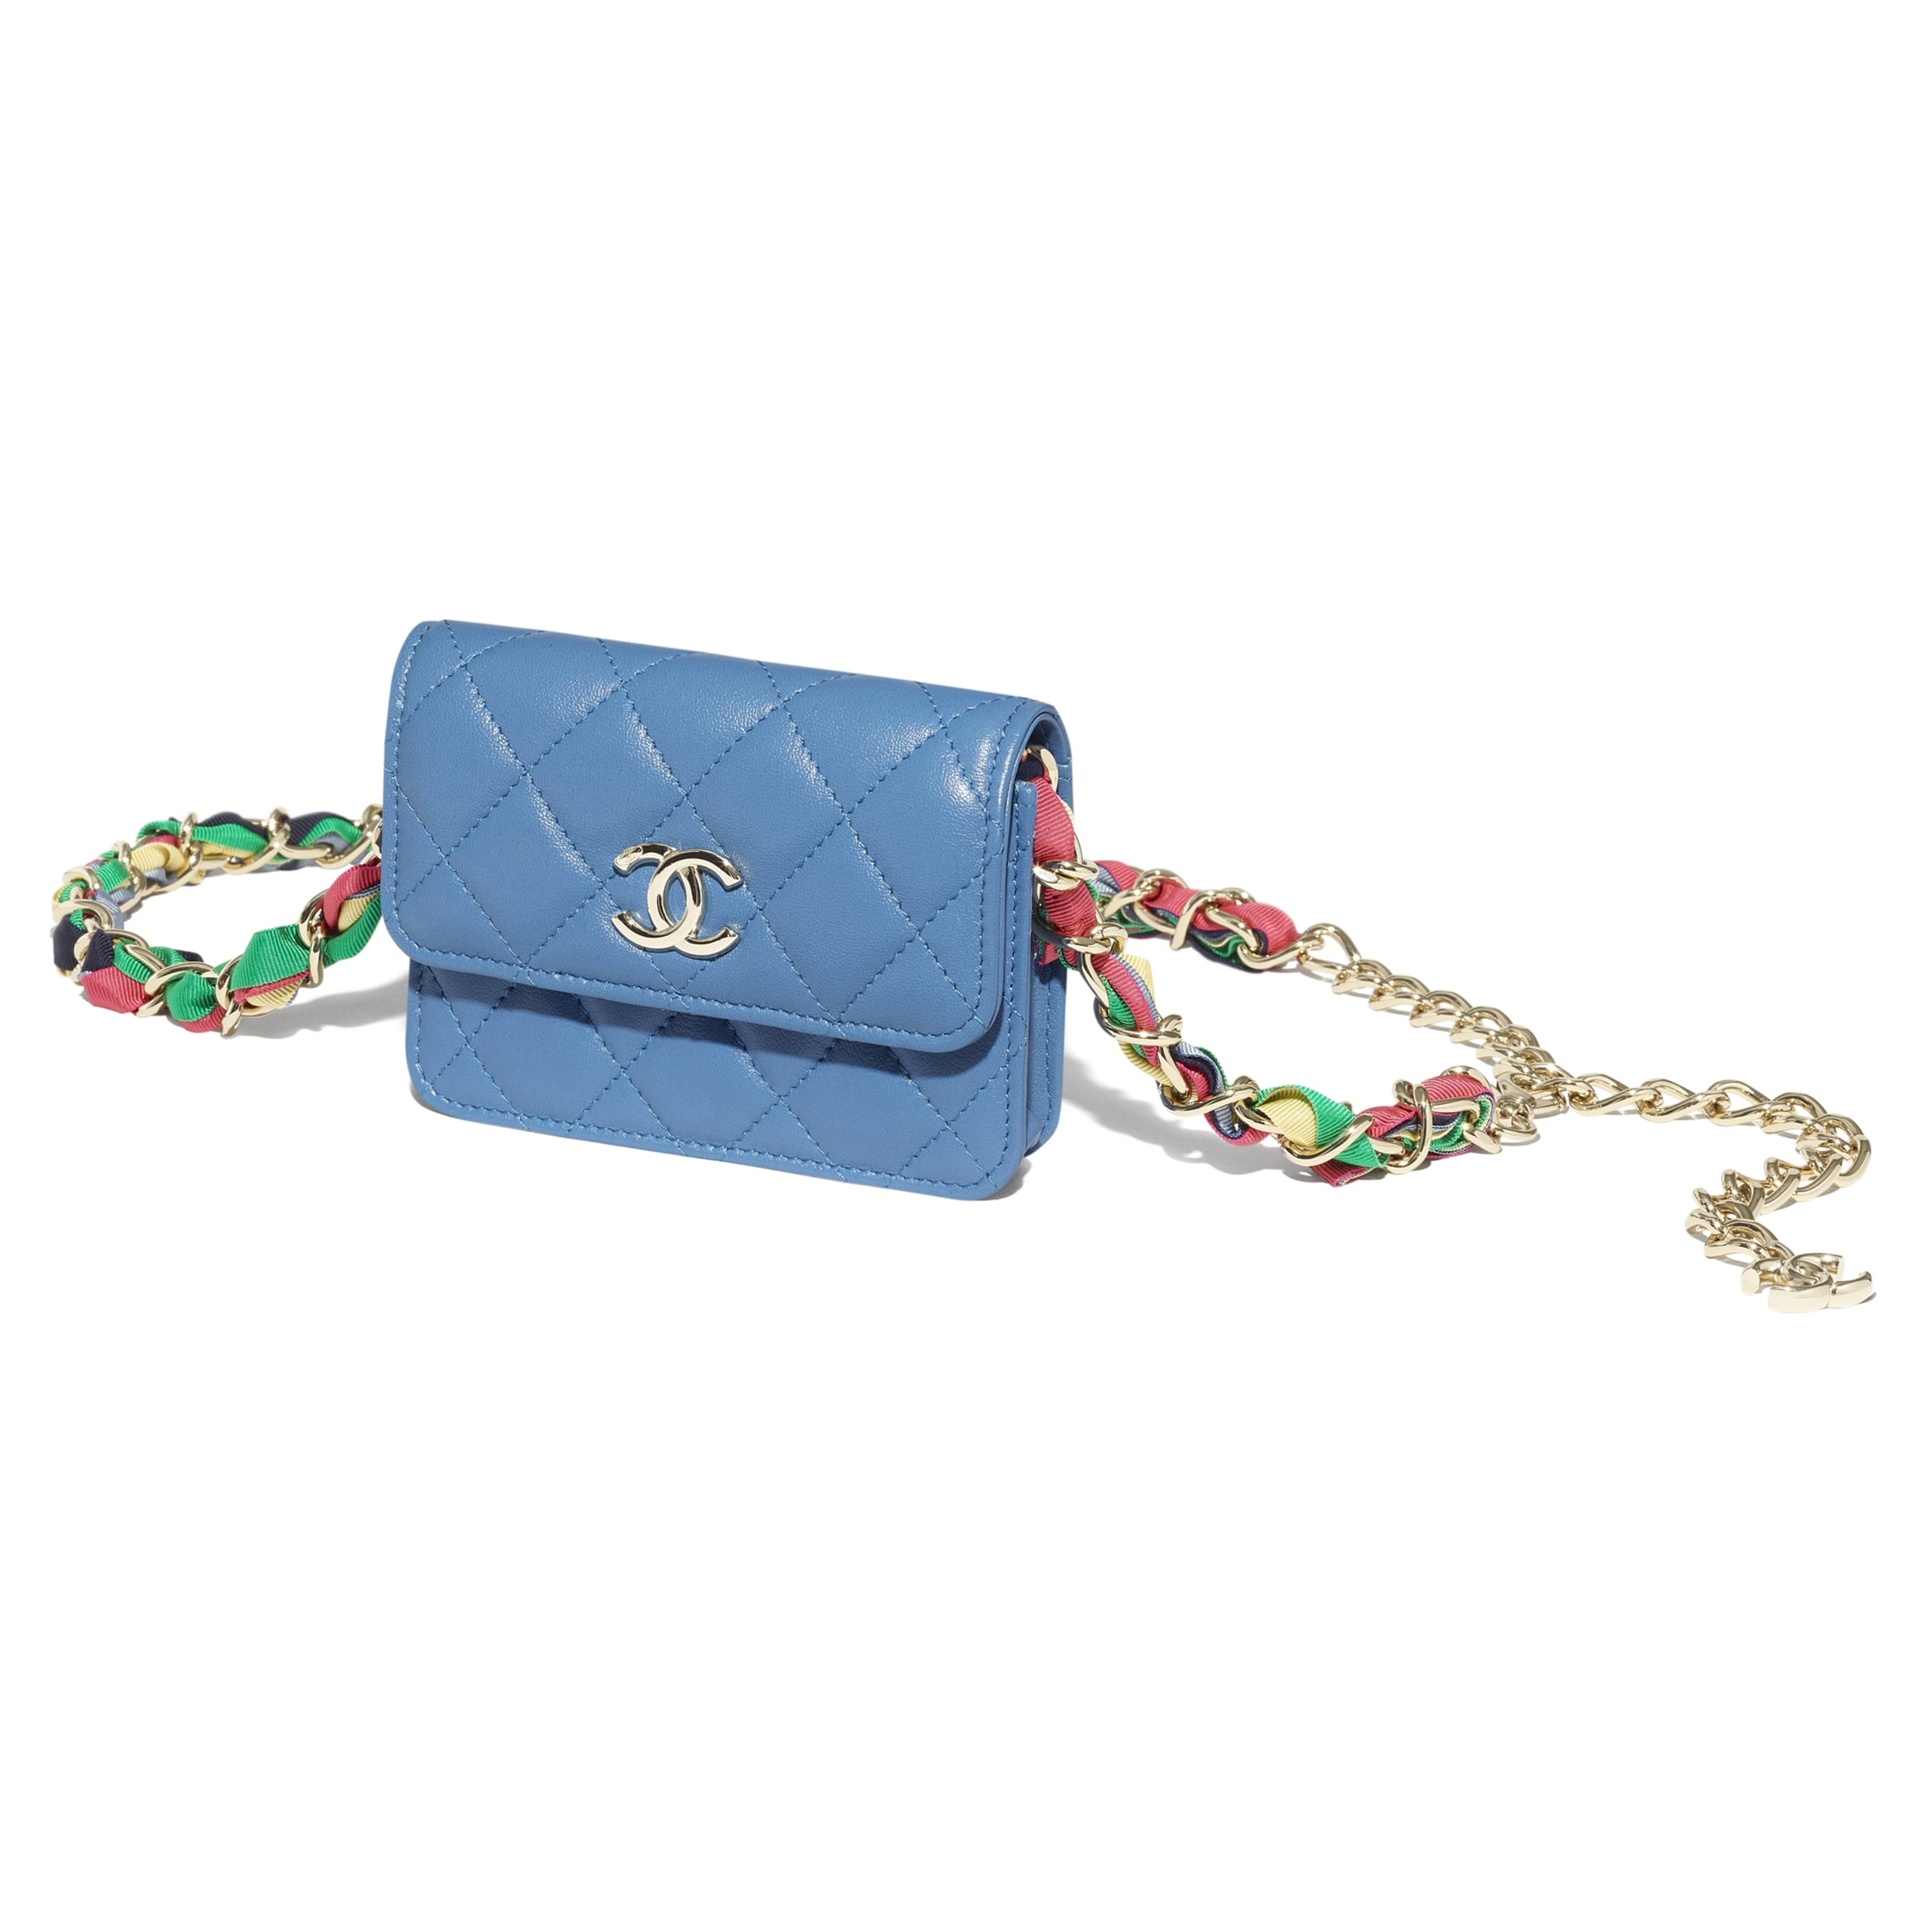 Belt Bag - Blue - Shiny Lambskin, Ribbon & Gold-Tone Metal - CHANEL - Extra view - see standard sized version